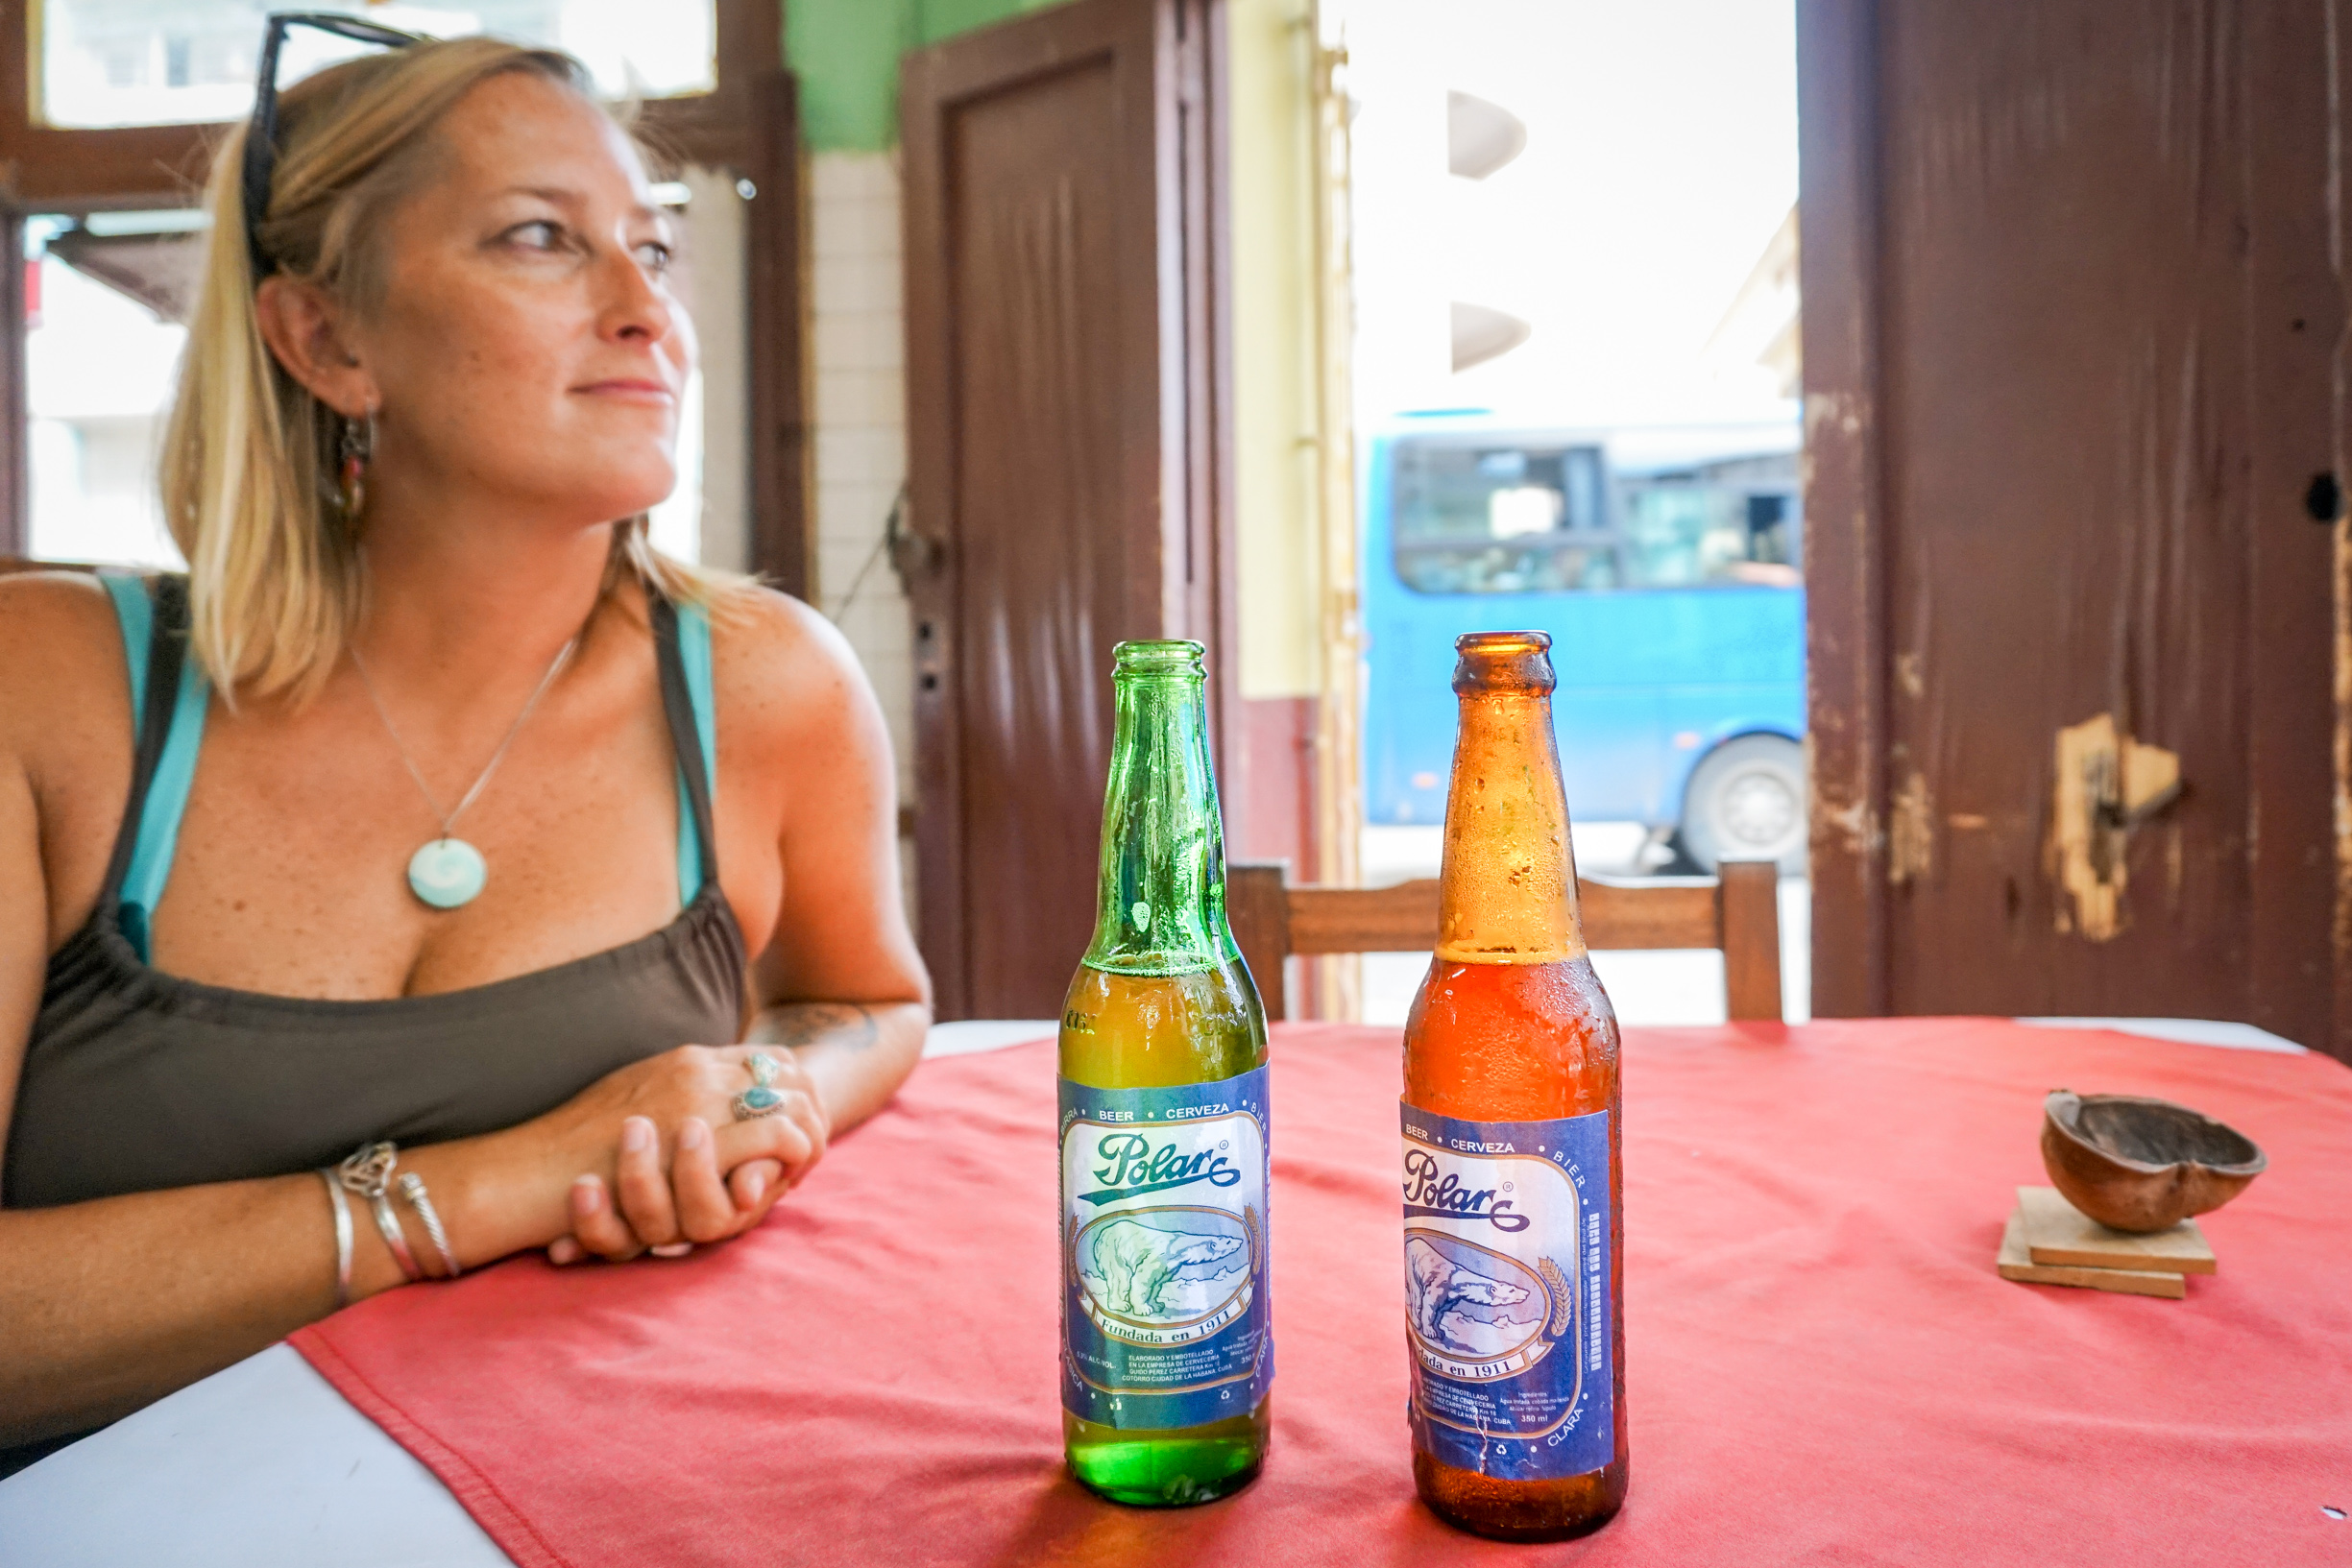 Just as we made it out of the tourist trap that is Callejon de Hamel, an alley with  painted walls and amusing sculpture, we managed to stumble across this corner bar just a few yards away. Here, we had the coldest, cheapest beer sold on the island - or so we were convinced.